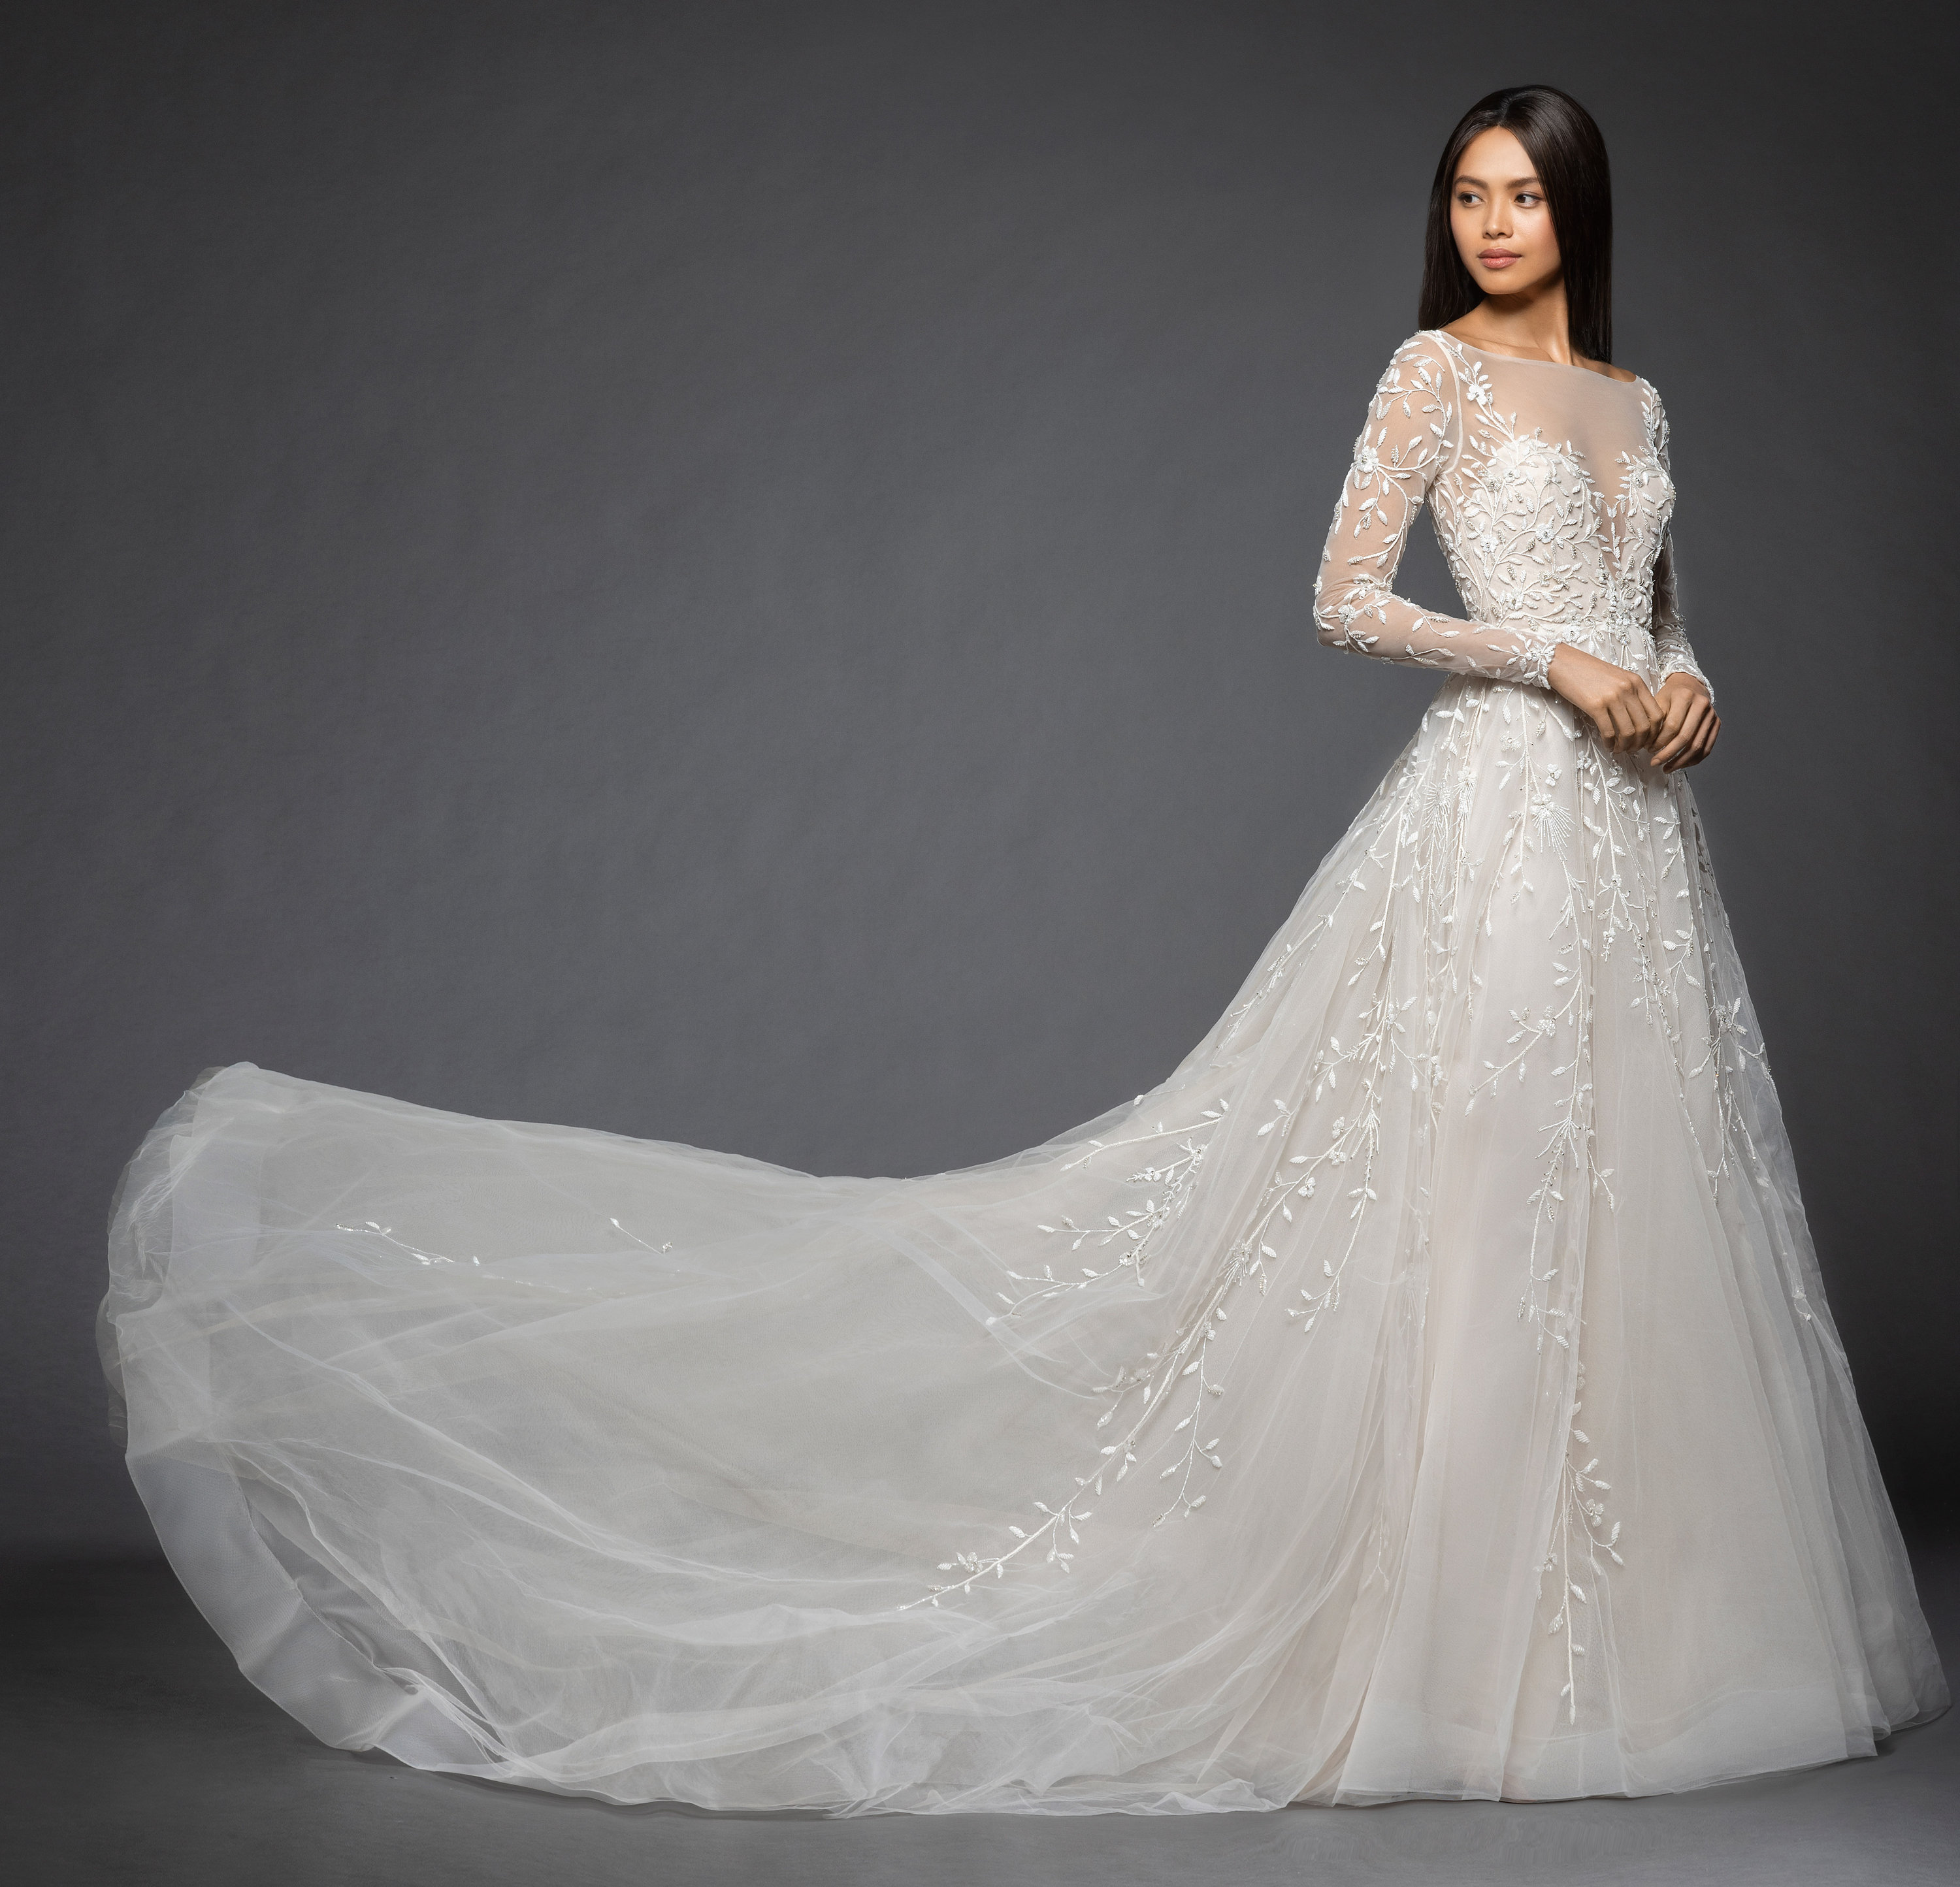 Floral Wedding Dress: Long Sleeve Floral Design Illusion Sweetheart A-line